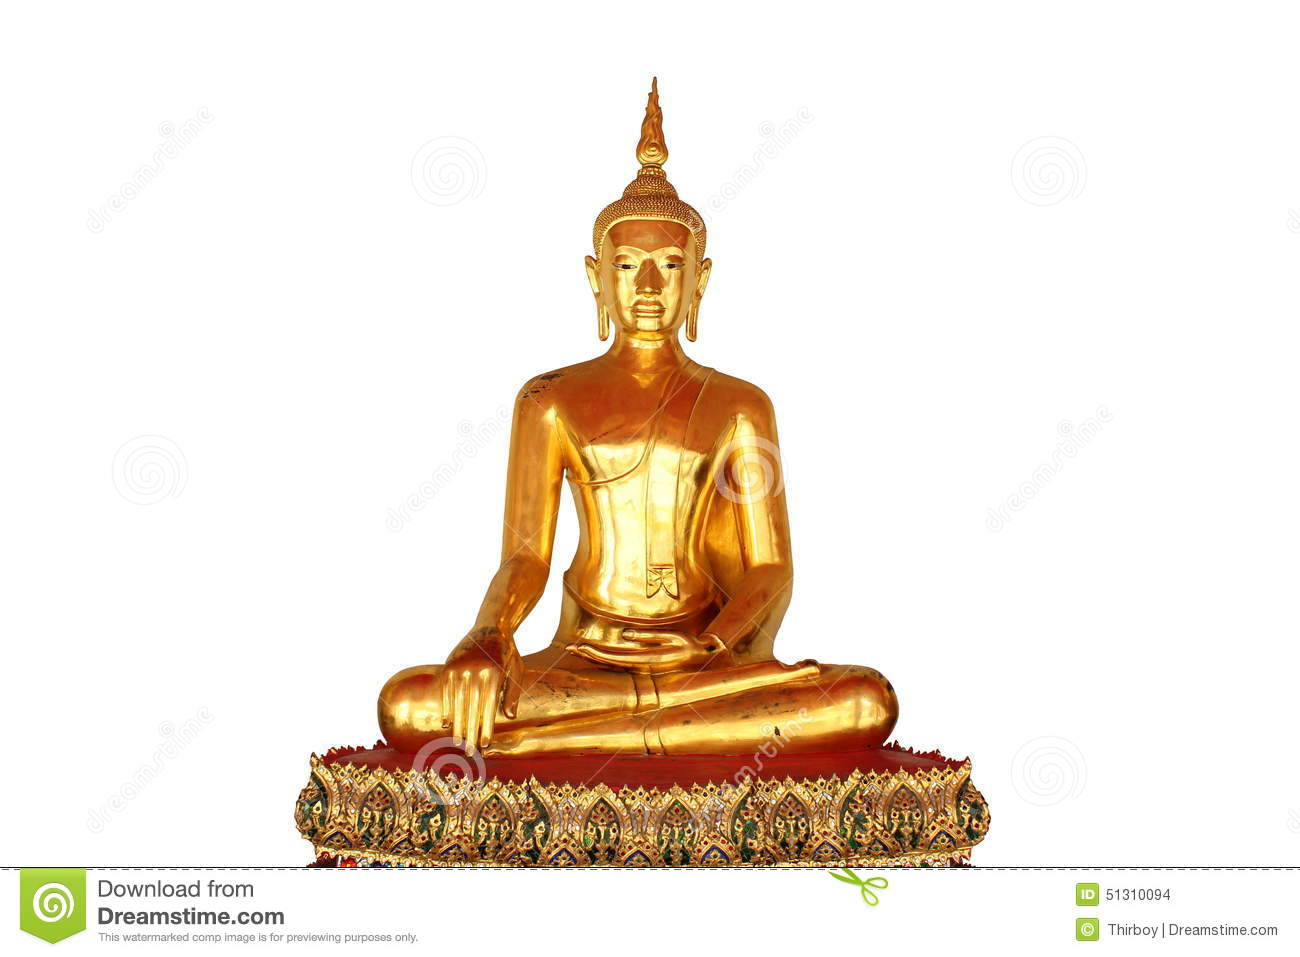 nantes buddhist singles Buddhist men  but there is also a problem for singles who opt for online dating sites for new users or those who are not familiar with the guidelines of online dating, it can become a blur process of finding the right kind of partner through online dating sites.